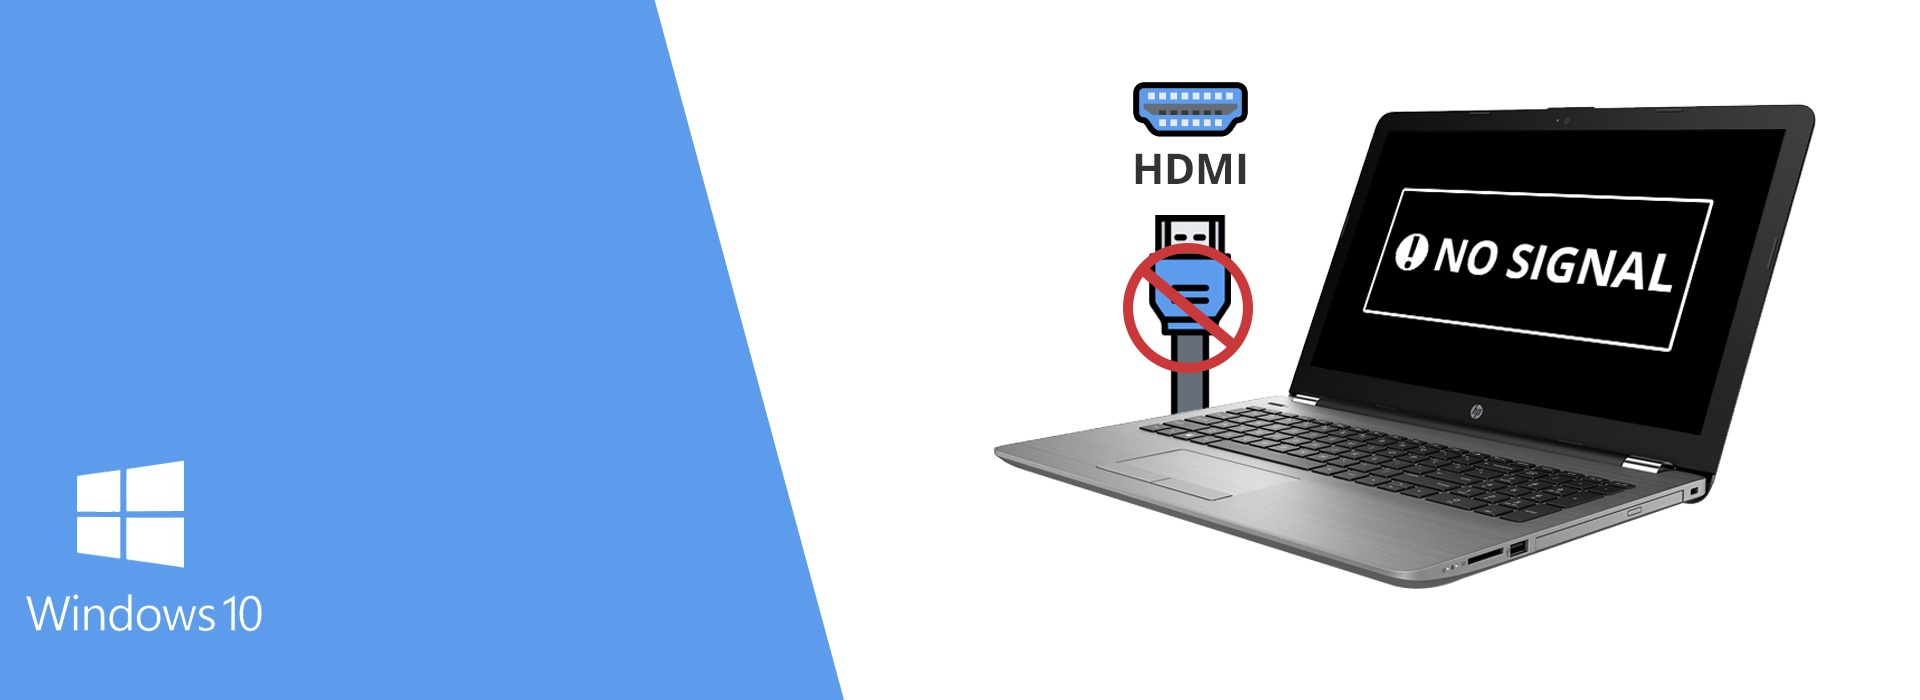 fix windows 10 not detecting hdmi tv issue driver easy fix windows 10 not detecting hdmi tv